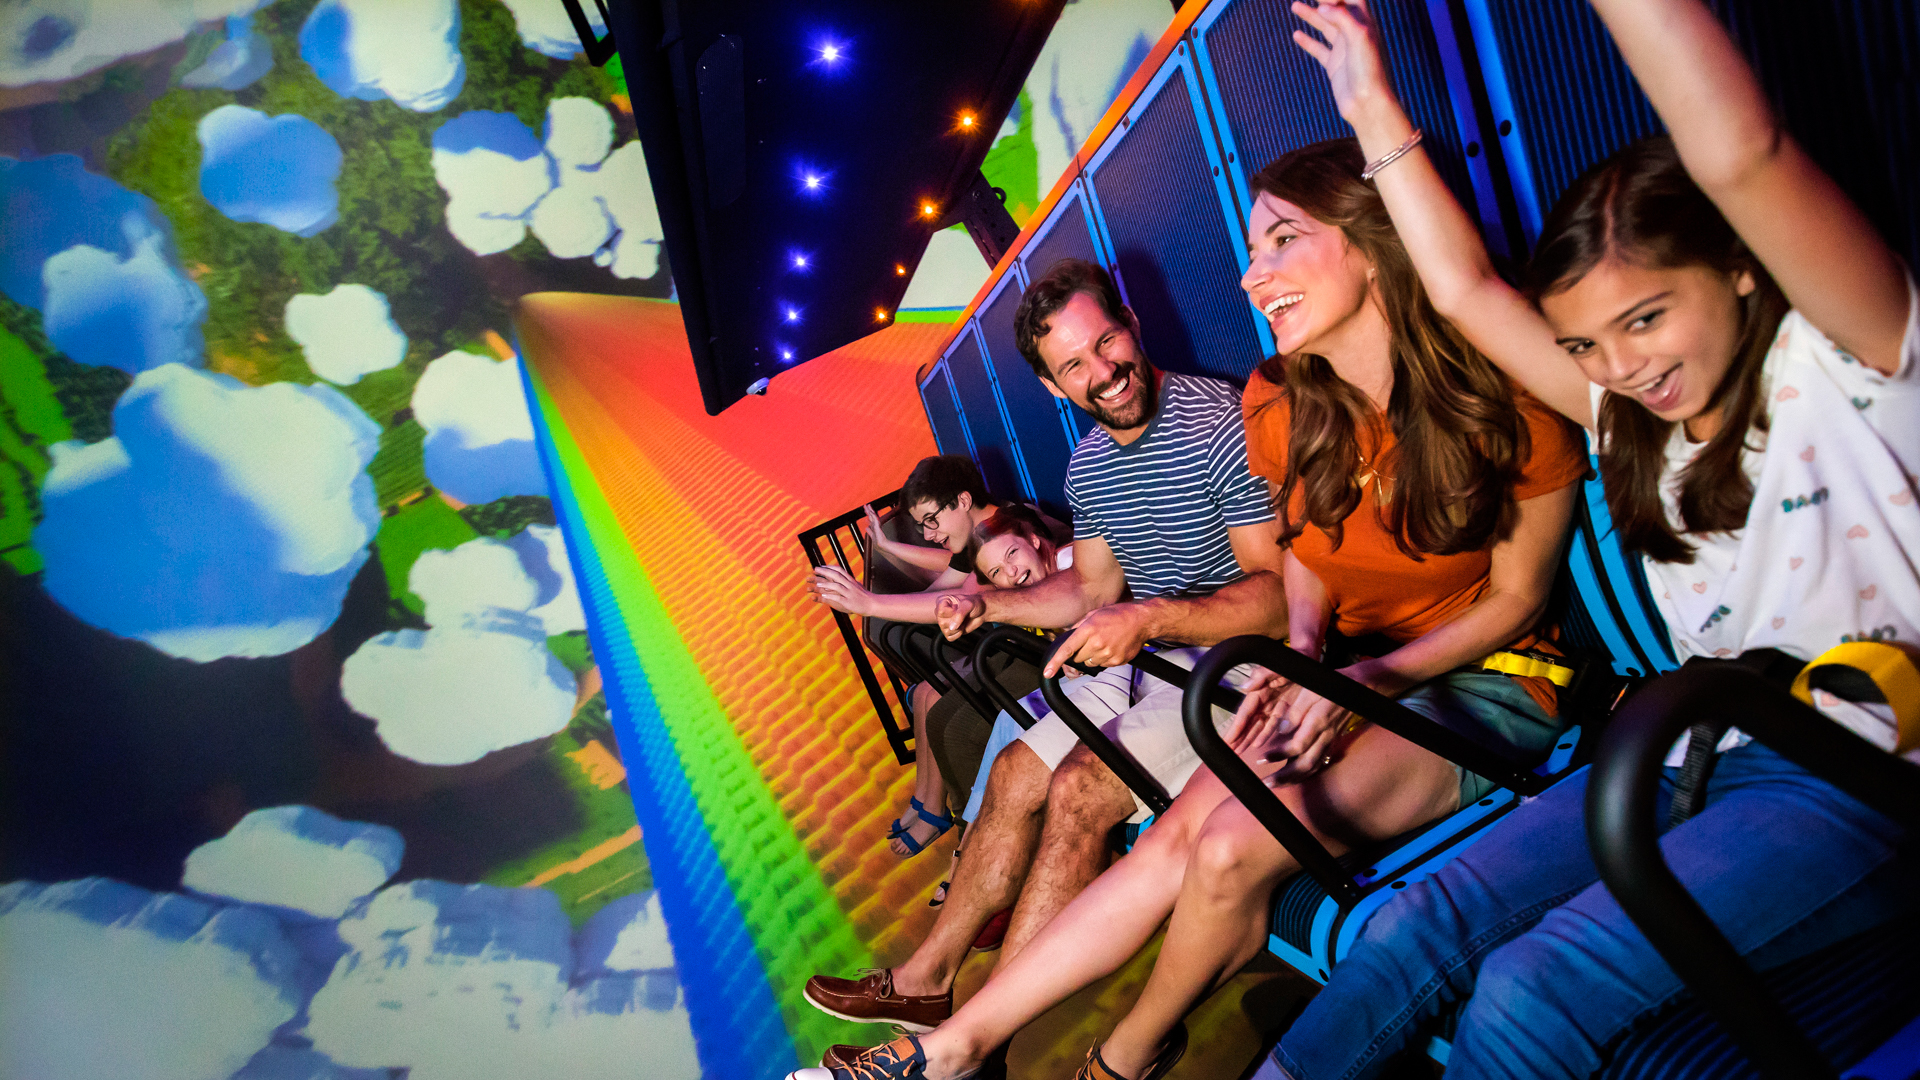 """Slide 2 of 21: Location: Winter Haven, Florida Admission price: $80.99+ Ride opening: March 27, 2019 If you and your little ones are fans of """"The Lego Movie,"""" you'll love Legoland's newly opened area, The Lego Movie World, in which Bricksburg and all of its colorful characters are brought to life. The area offers mascot photo ops, unique dining experiences, shops and some of the best theme park rides around. Help save the city from Duplo alien invaders on the water ride Battle of Bricksburg. You'll spray the Lego-stealing aliens with your water gun in order to save the day. Then, head over to The Masters of Flight to soar on Emmet's Triple Decker Couch through Cloud Cuckoo Land, Middle Zealand and Pirate's Cove. Guests are suspended under a full-dome virtual screen that gives the realistic sensation of flying. The Lego Movie World has these and other fun, new theme park rides that make admission well worth the cost. Check Out: The Priciest Theme Park Tickets Around the Globe"""